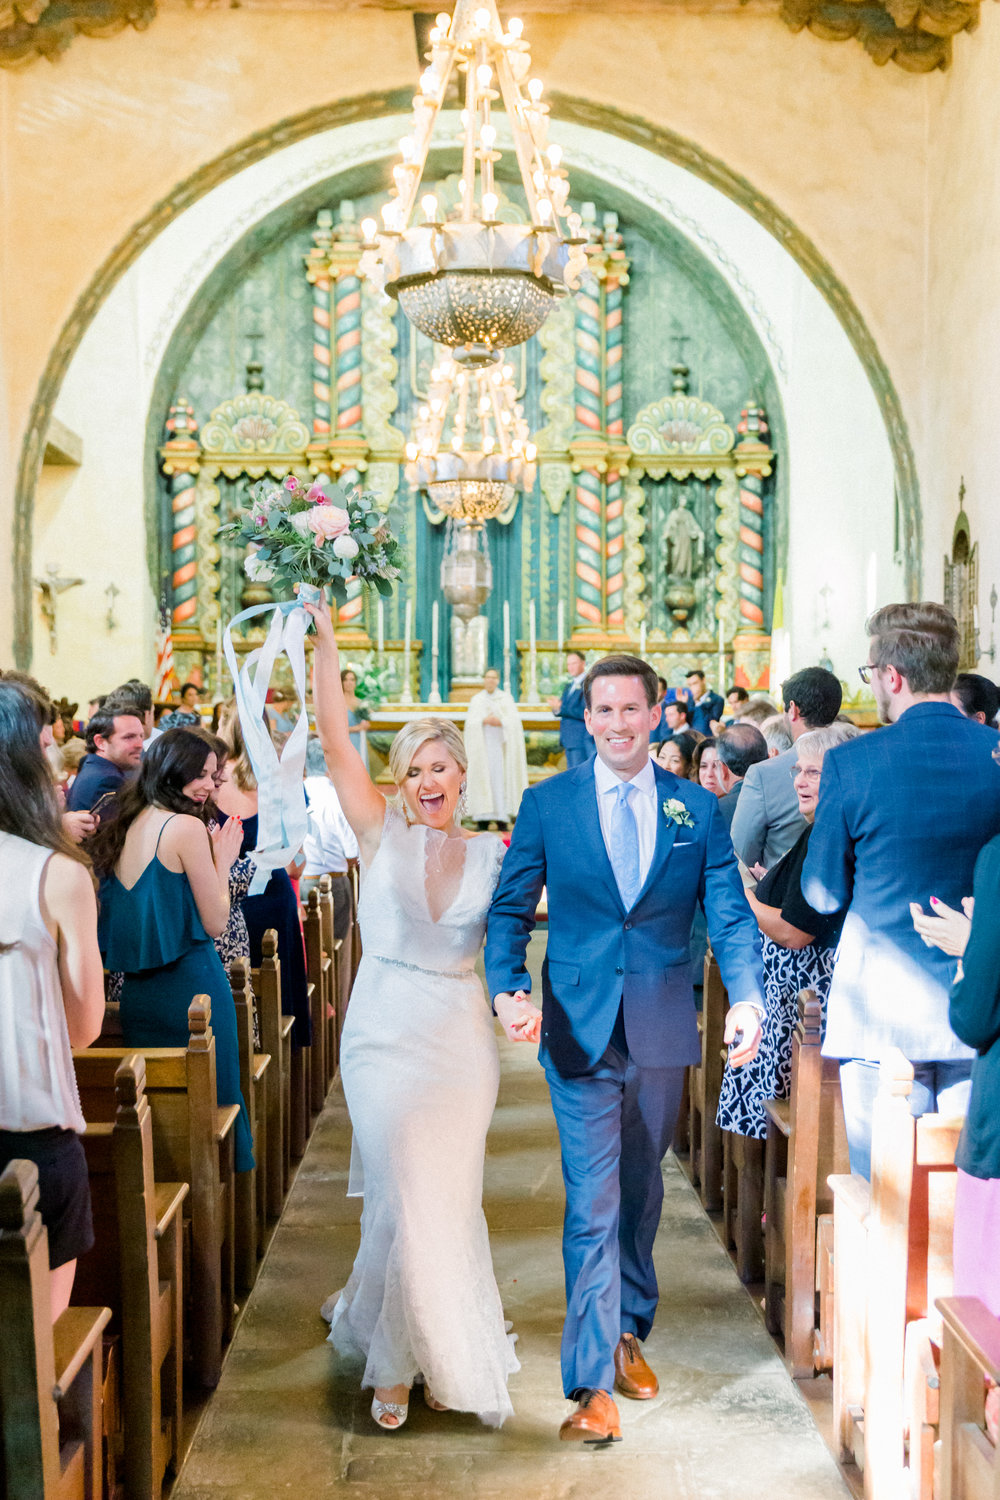 www.santabarbarawedding.com | Our Lady of Mount Carmel | MOXI | Ann Johnson | Islay Events | James & Jess | Ceremony | Bride and Groom